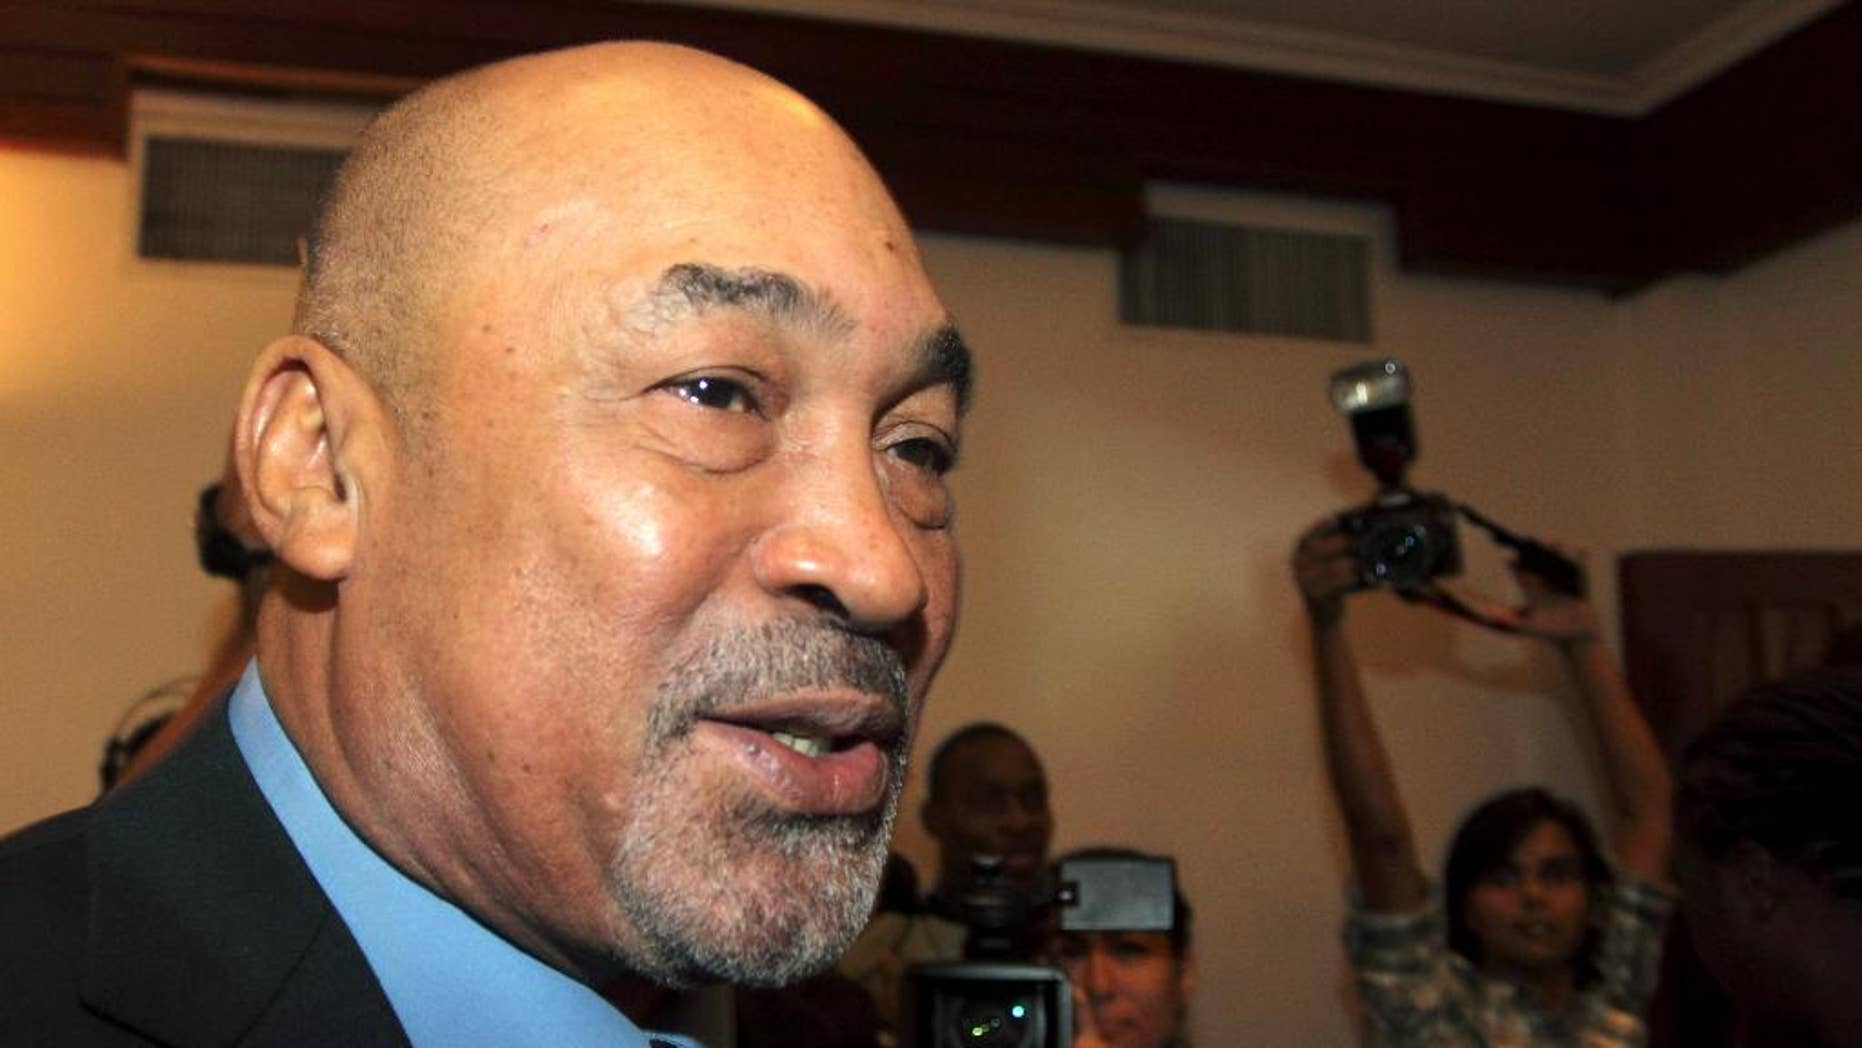 FILE - In this Sept. 2, 2010 file photo, Suriname's President Desi Bouterse speaks with journalists at the presidential cabinet office in Paramaribo, Suriname. Bouterse is betting that the Monday, May 25, 2015 election to choose the South American country's next Parliament will keep him and his party in power for another five years. (AP Photo/Edward Troon, File)